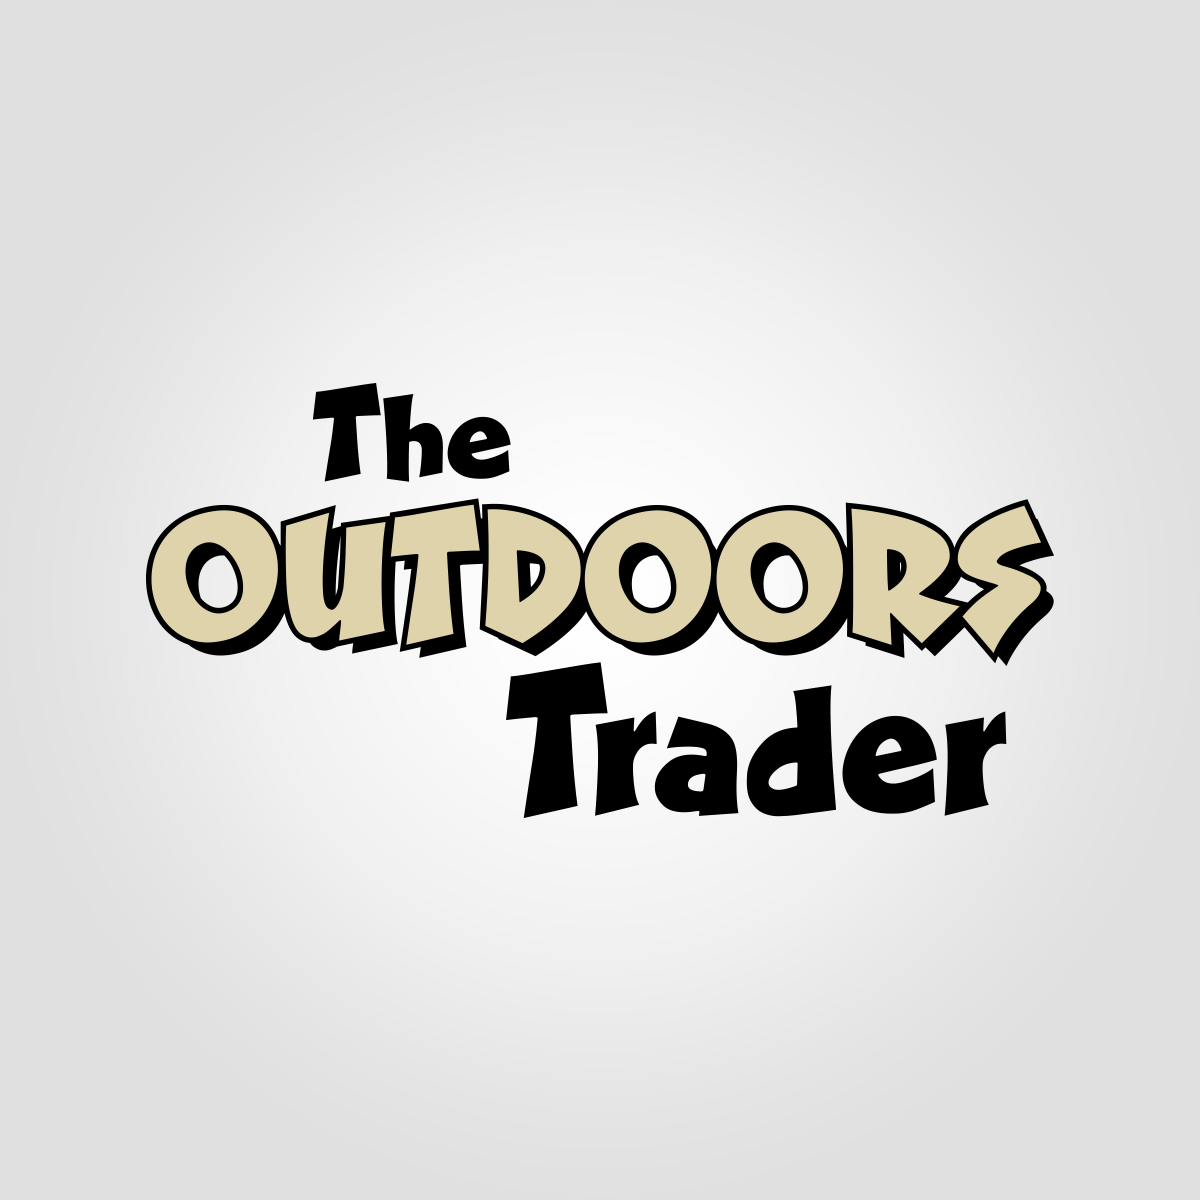 Handguns The Outdoors Trader